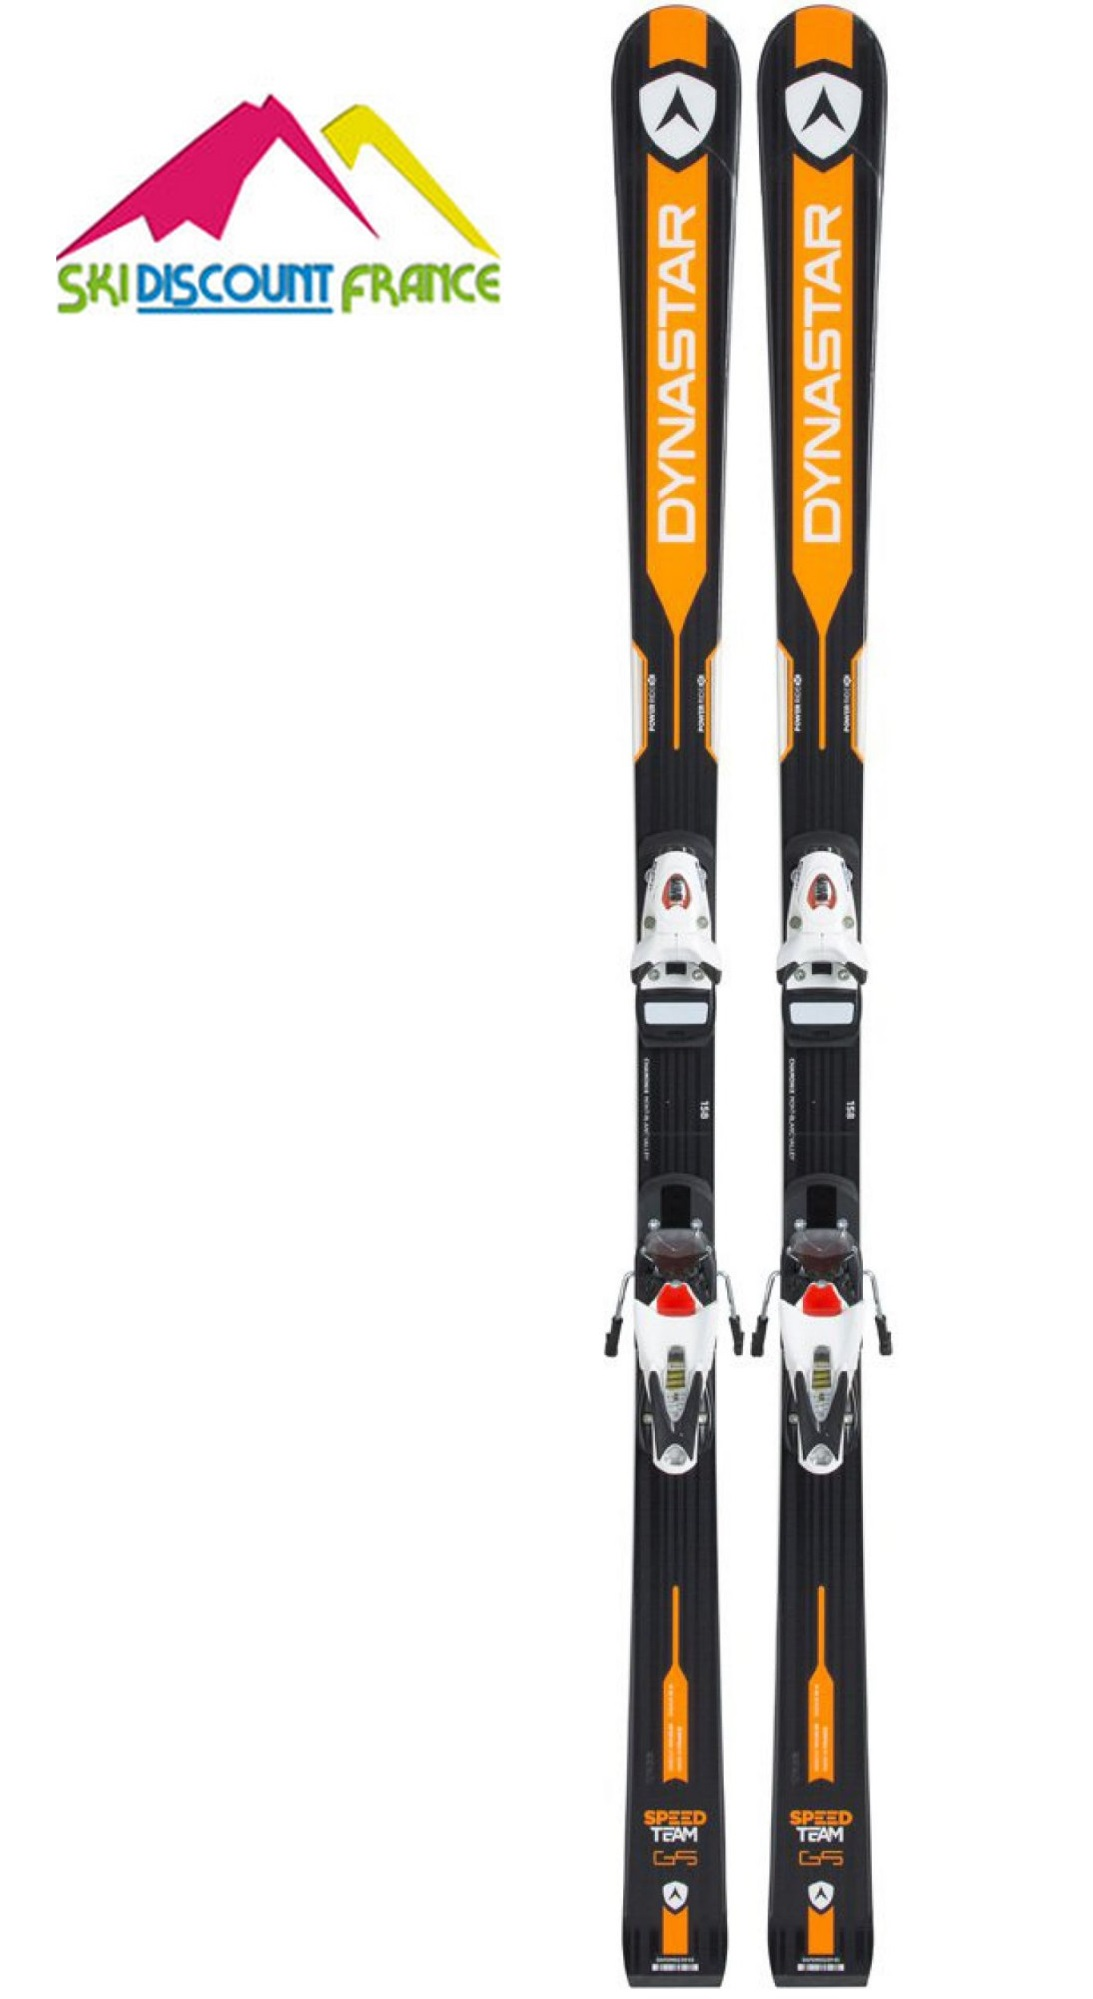 Ski Neuf Dynastar Speed Team GS 2017